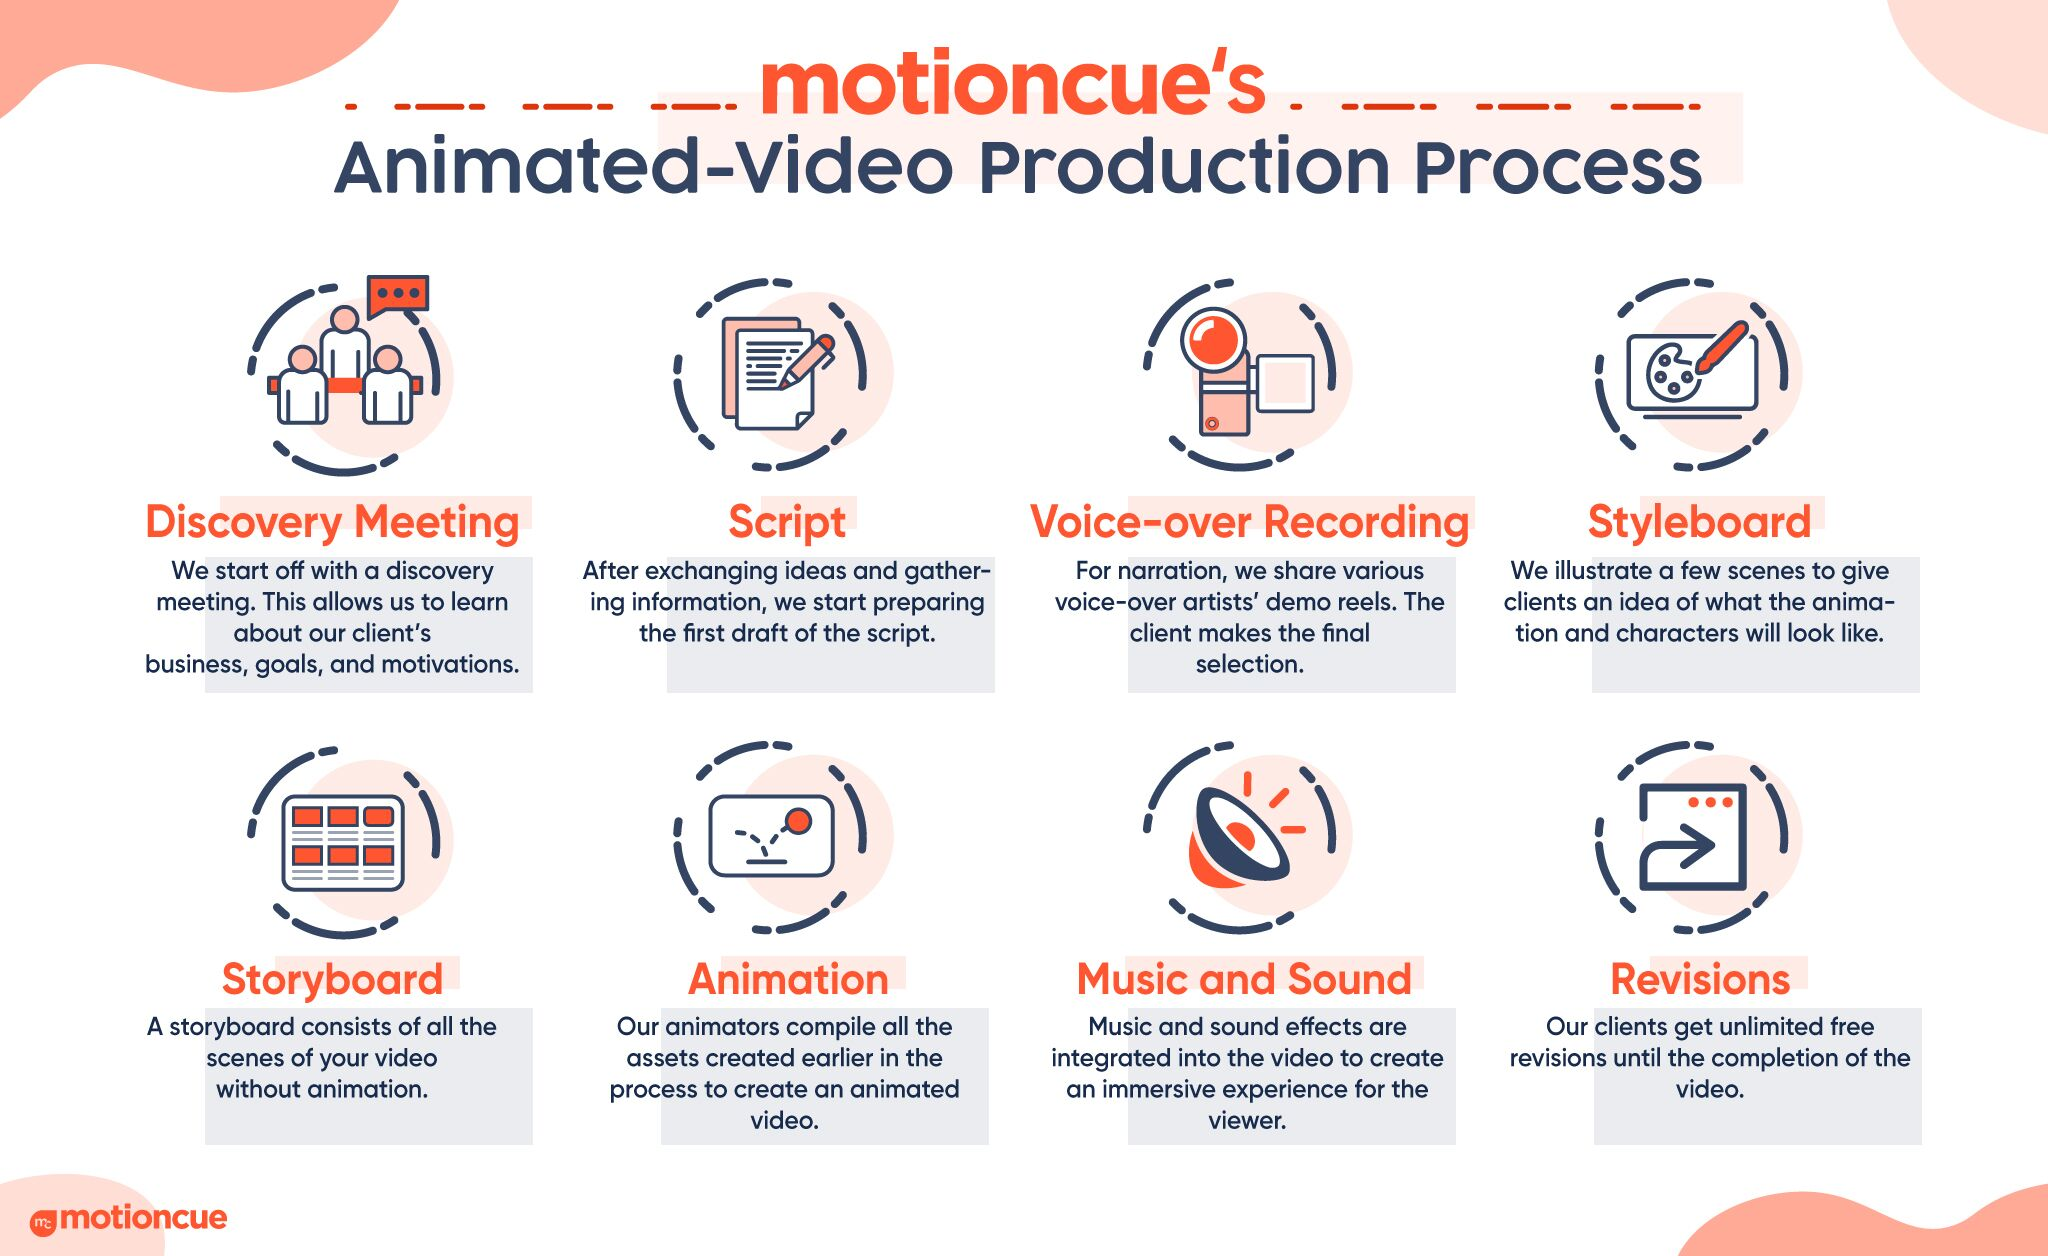 motioncue's animated-video production process-infographic